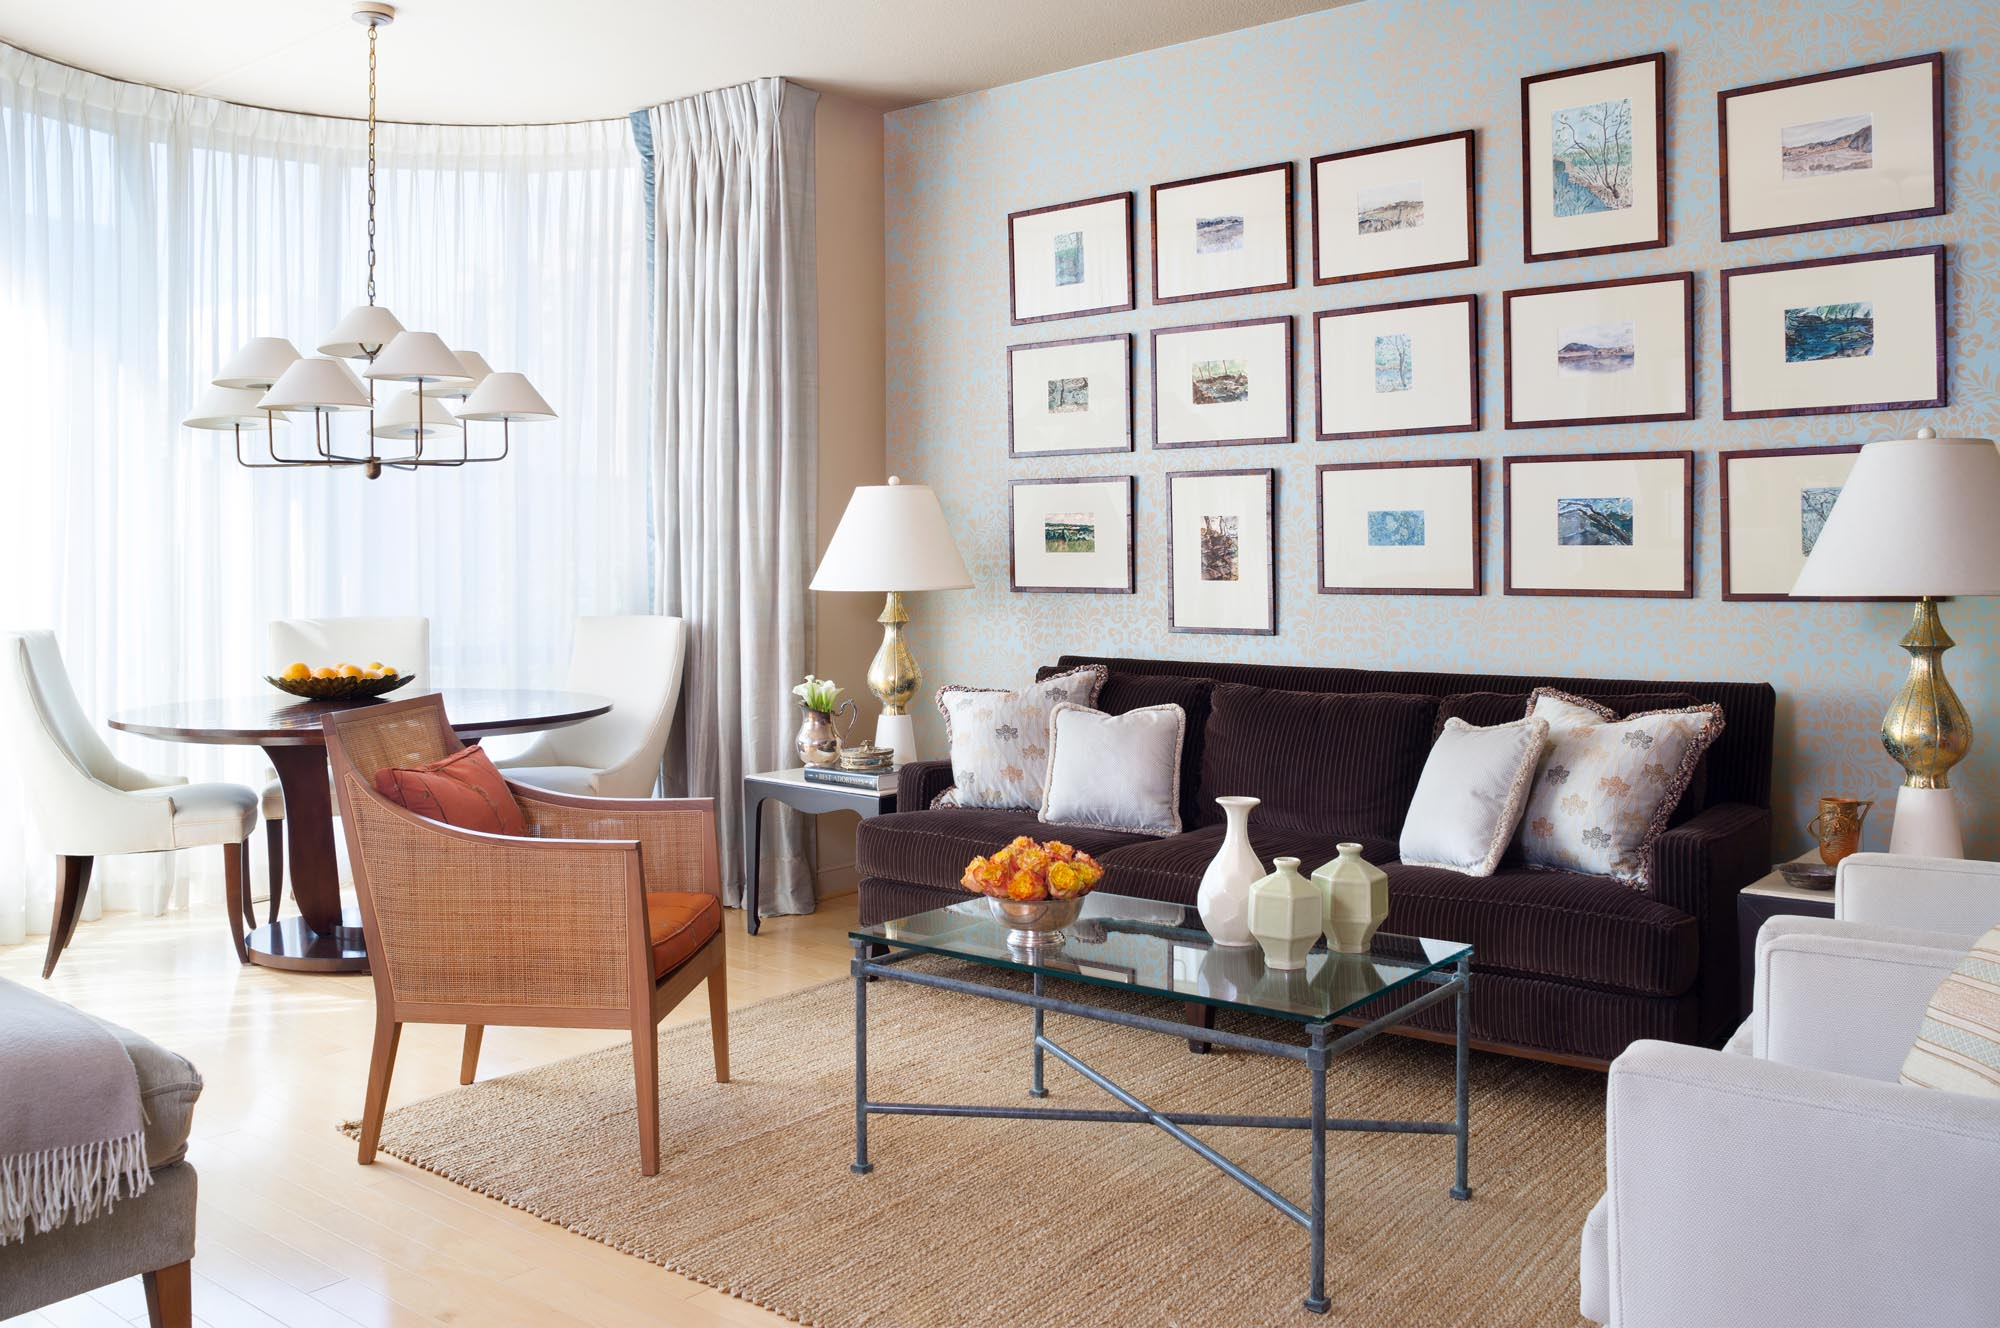 Modern living room interior with picture frames on the wall and brown carpet